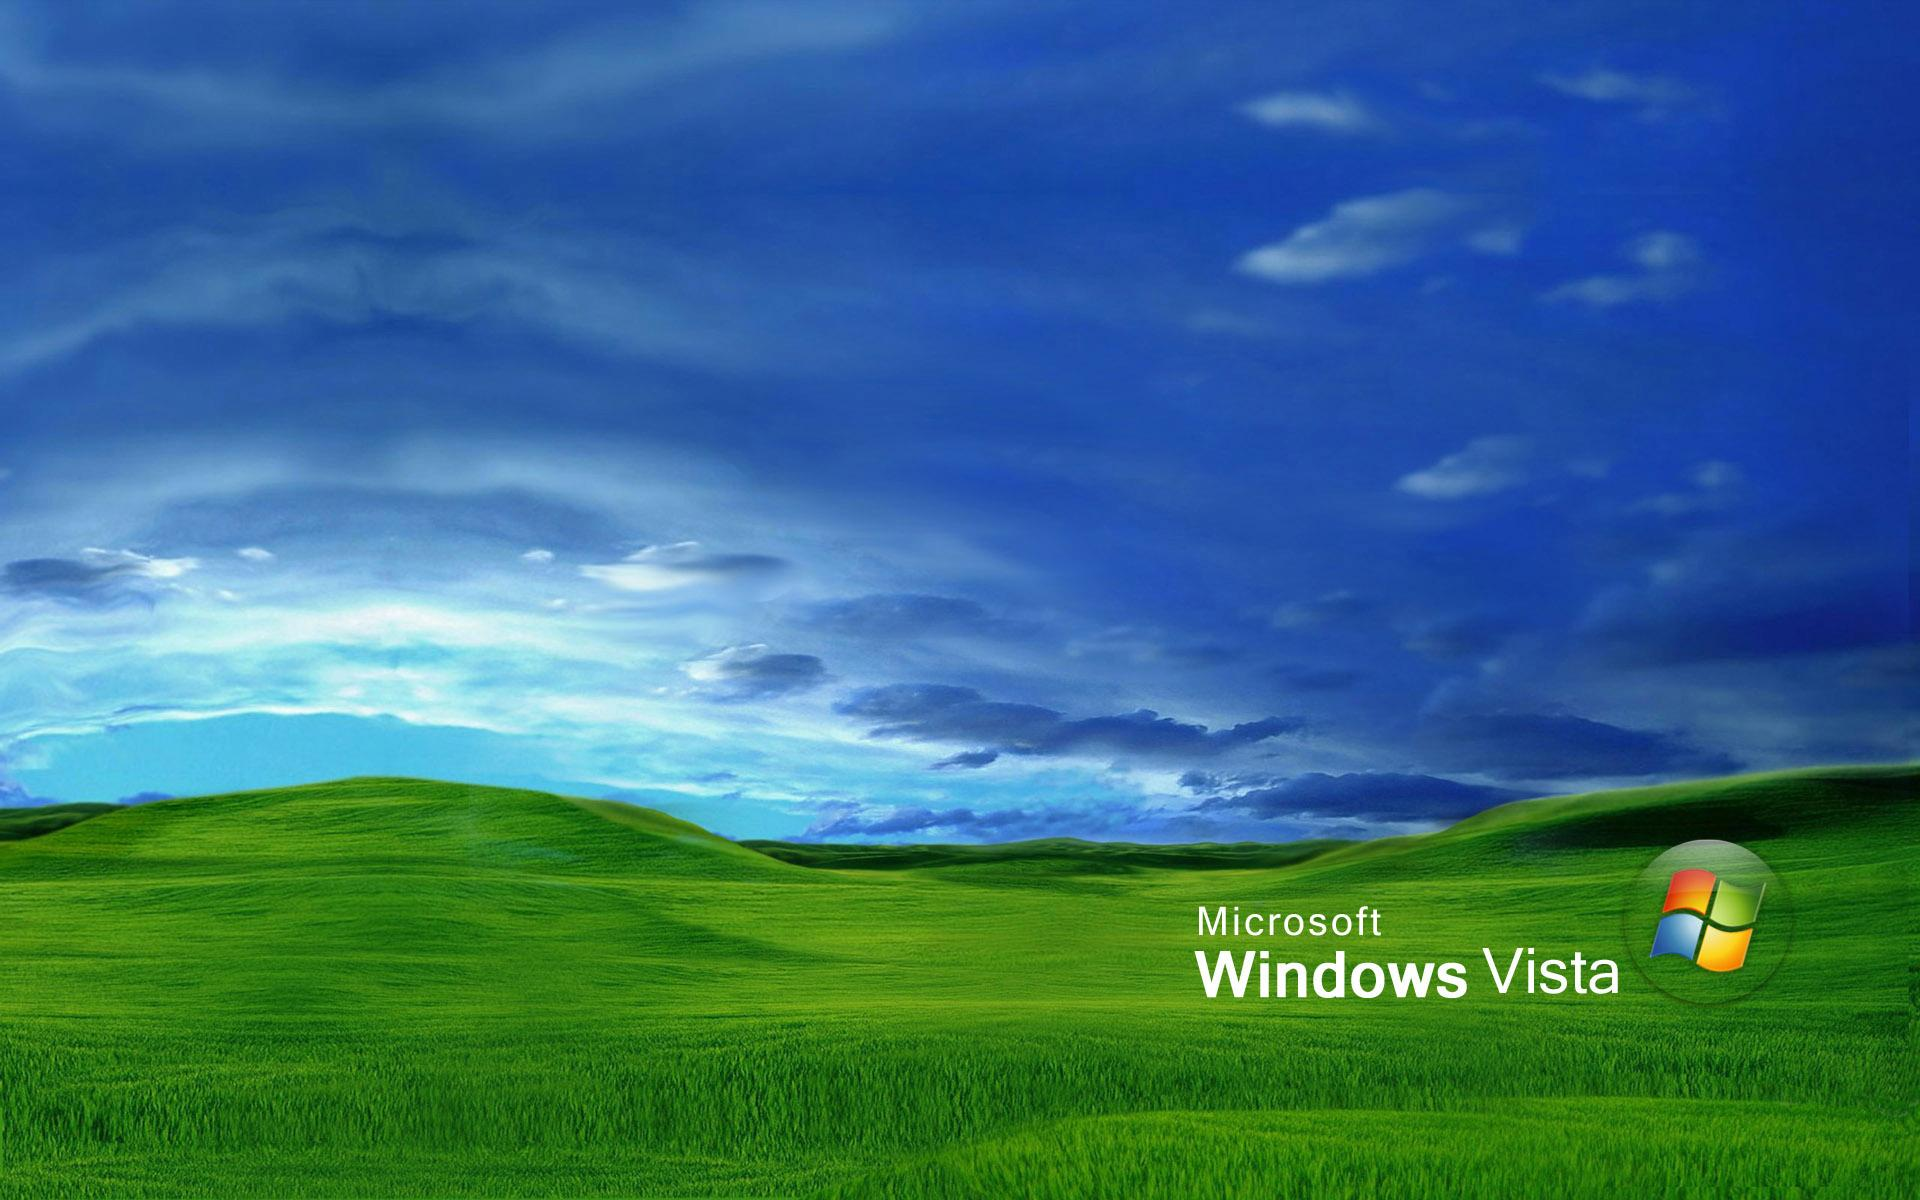 Обои Windows Vista (94) 1920x1200